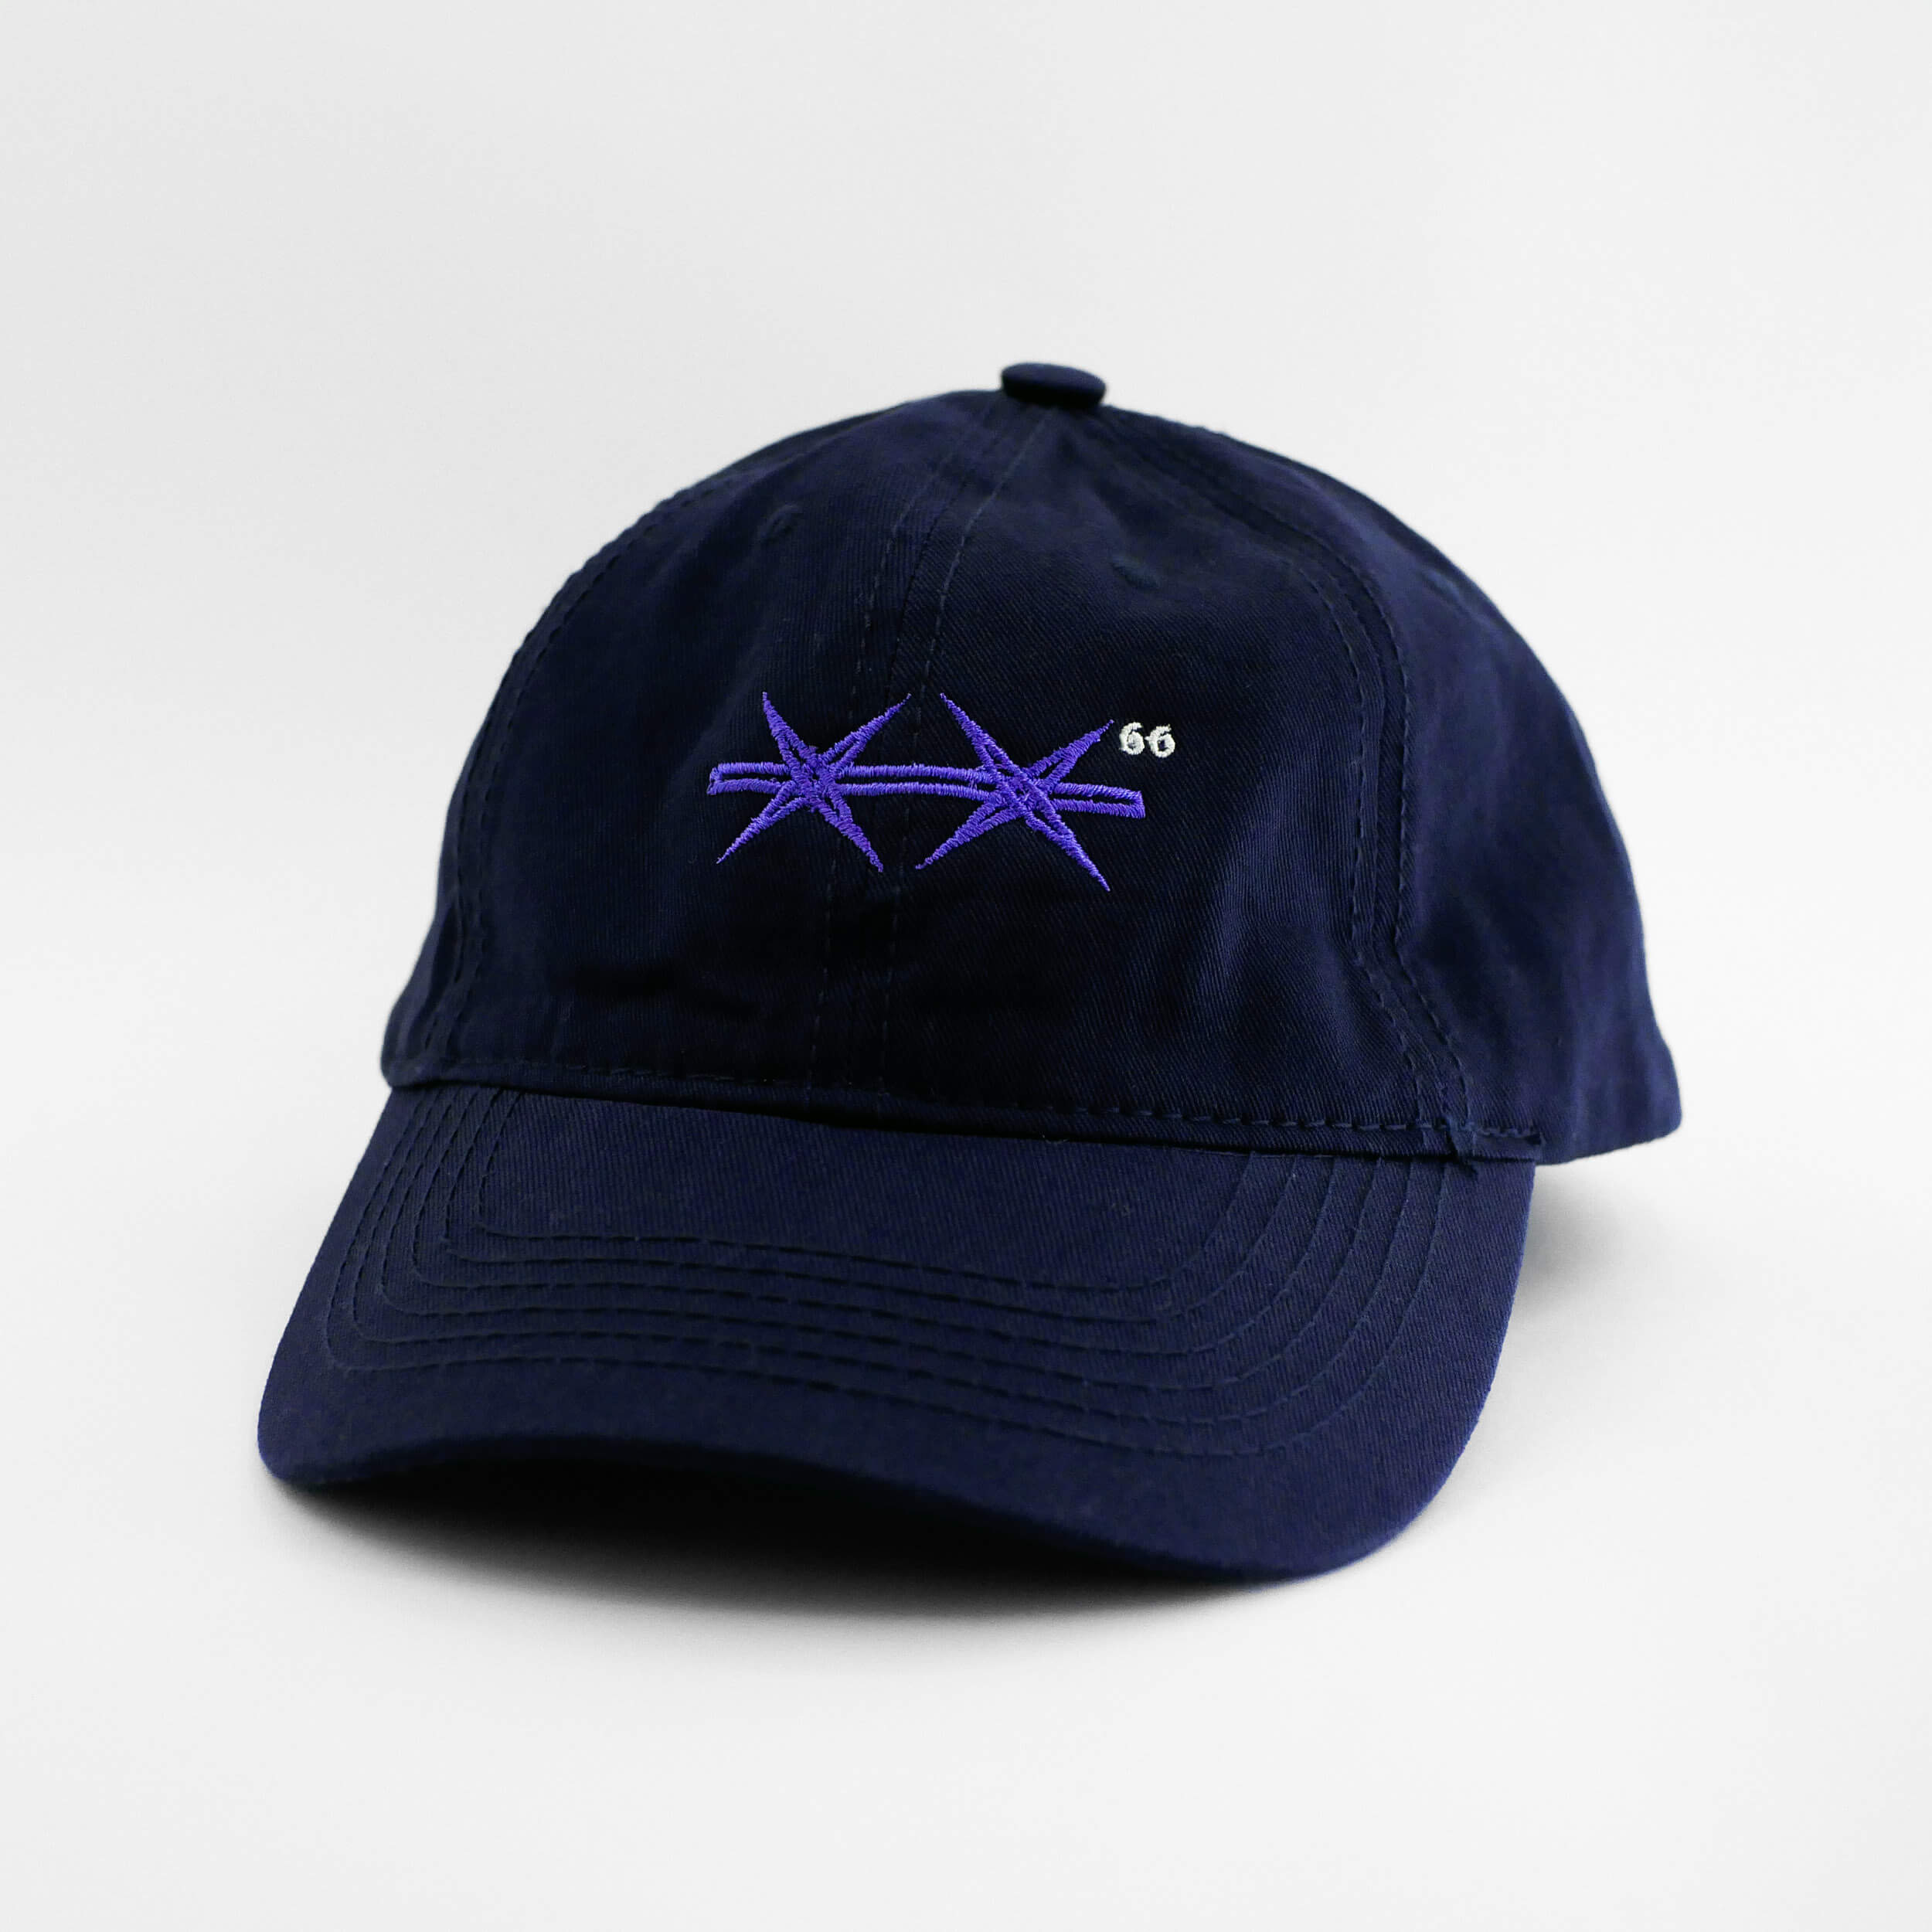 Angle view of the embroidered Barbed Wire navy blue dad hat from PHOSIS Clothing